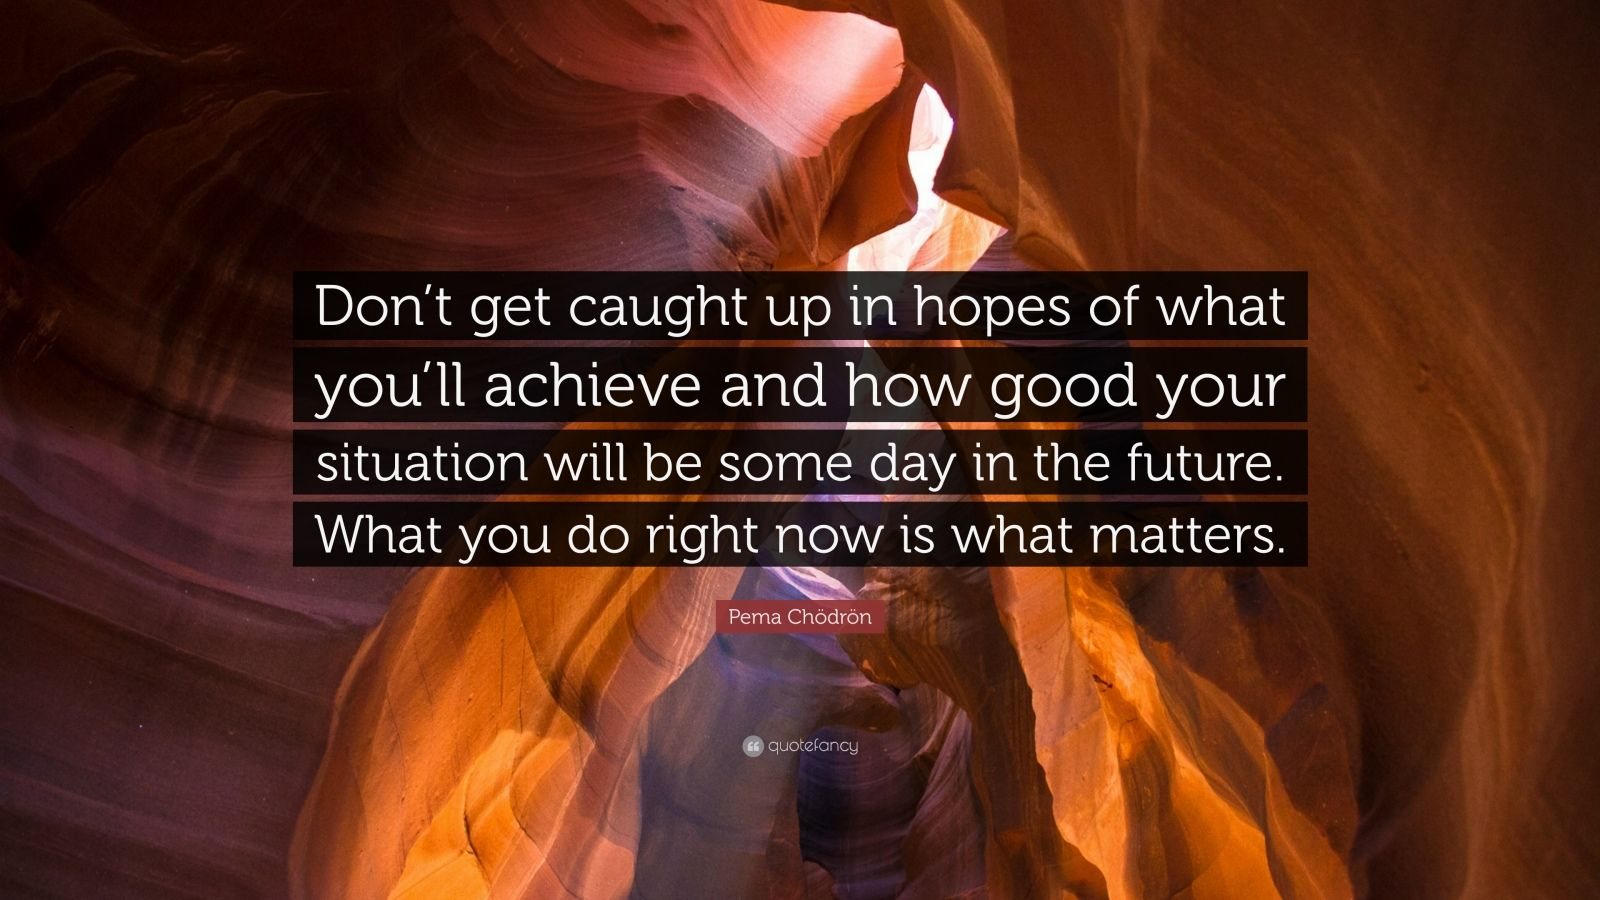 """Pema Chödrön Quote: """"Don't get caught up in hopes of what you'll achieve and how good your situation will be some day in the future. What you do right now is what matters."""""""